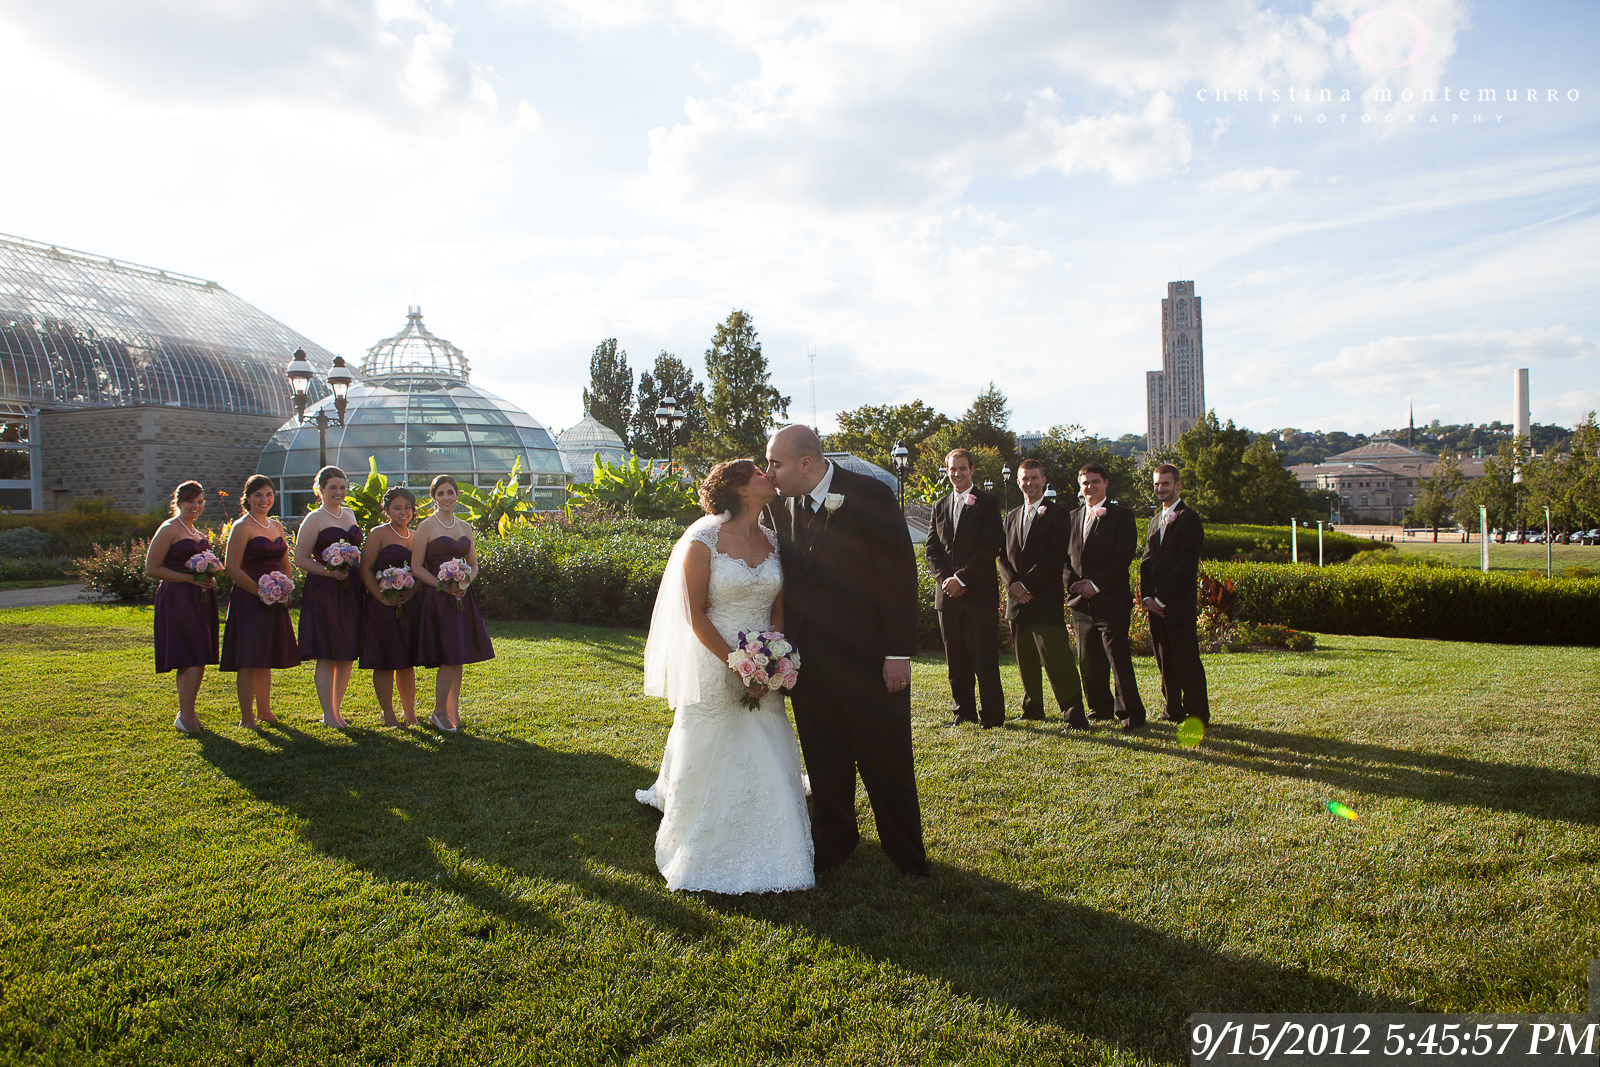 Phipps Conservatory and Botanical Garden, Oakland Pittsburgh Wedding Photography